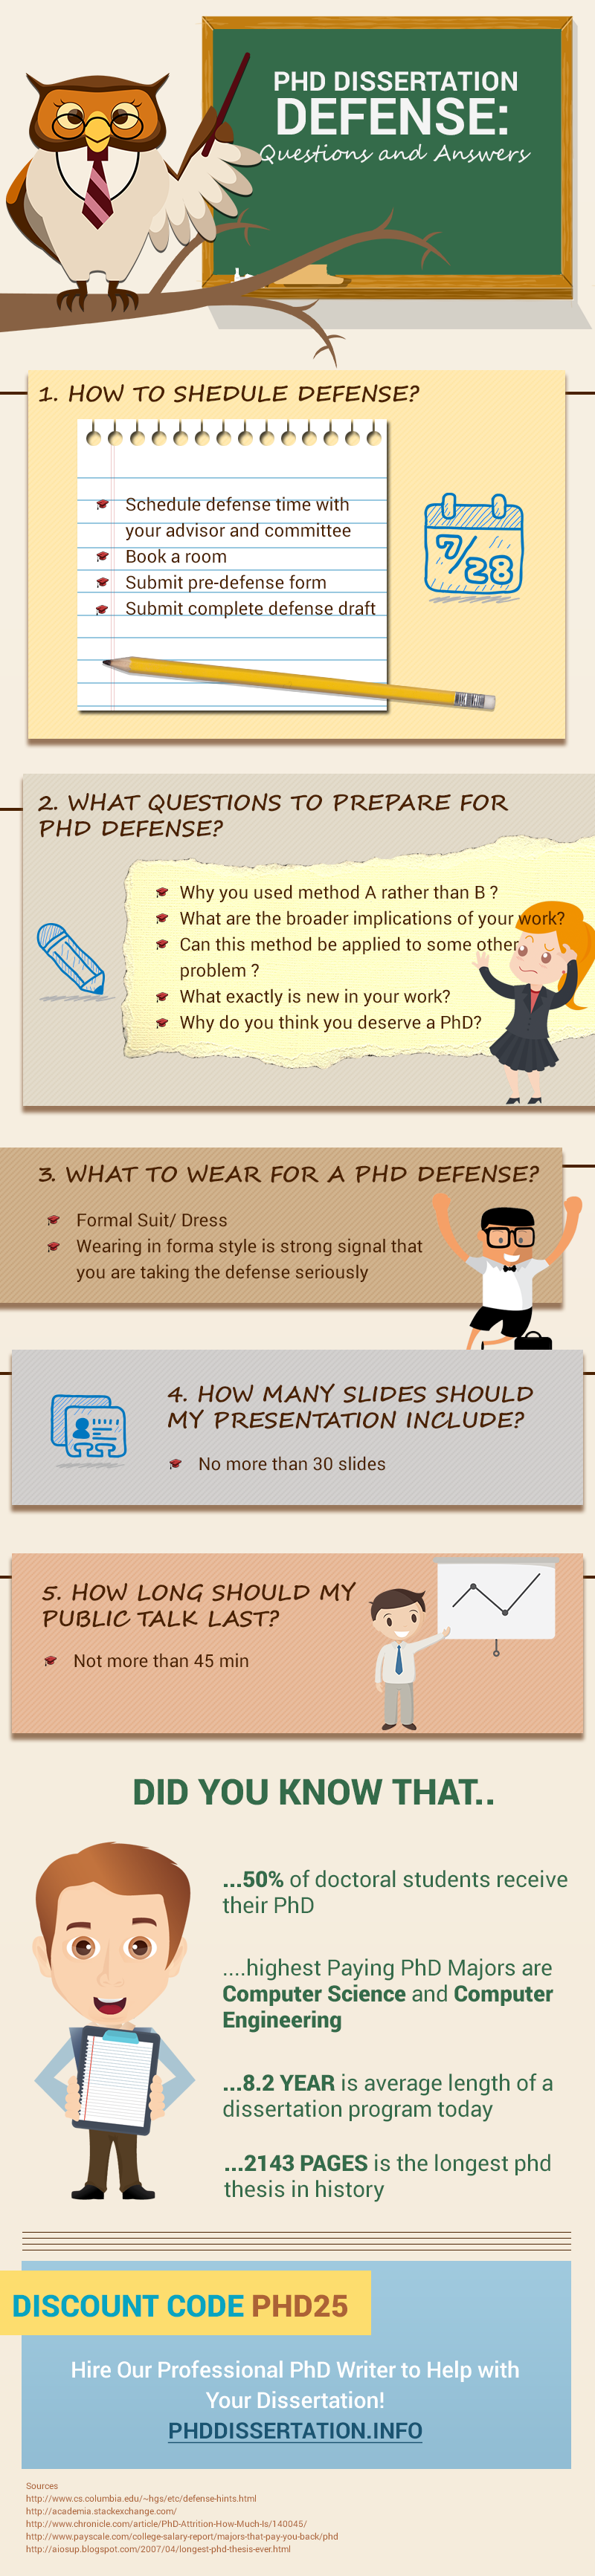 No dissertation phd